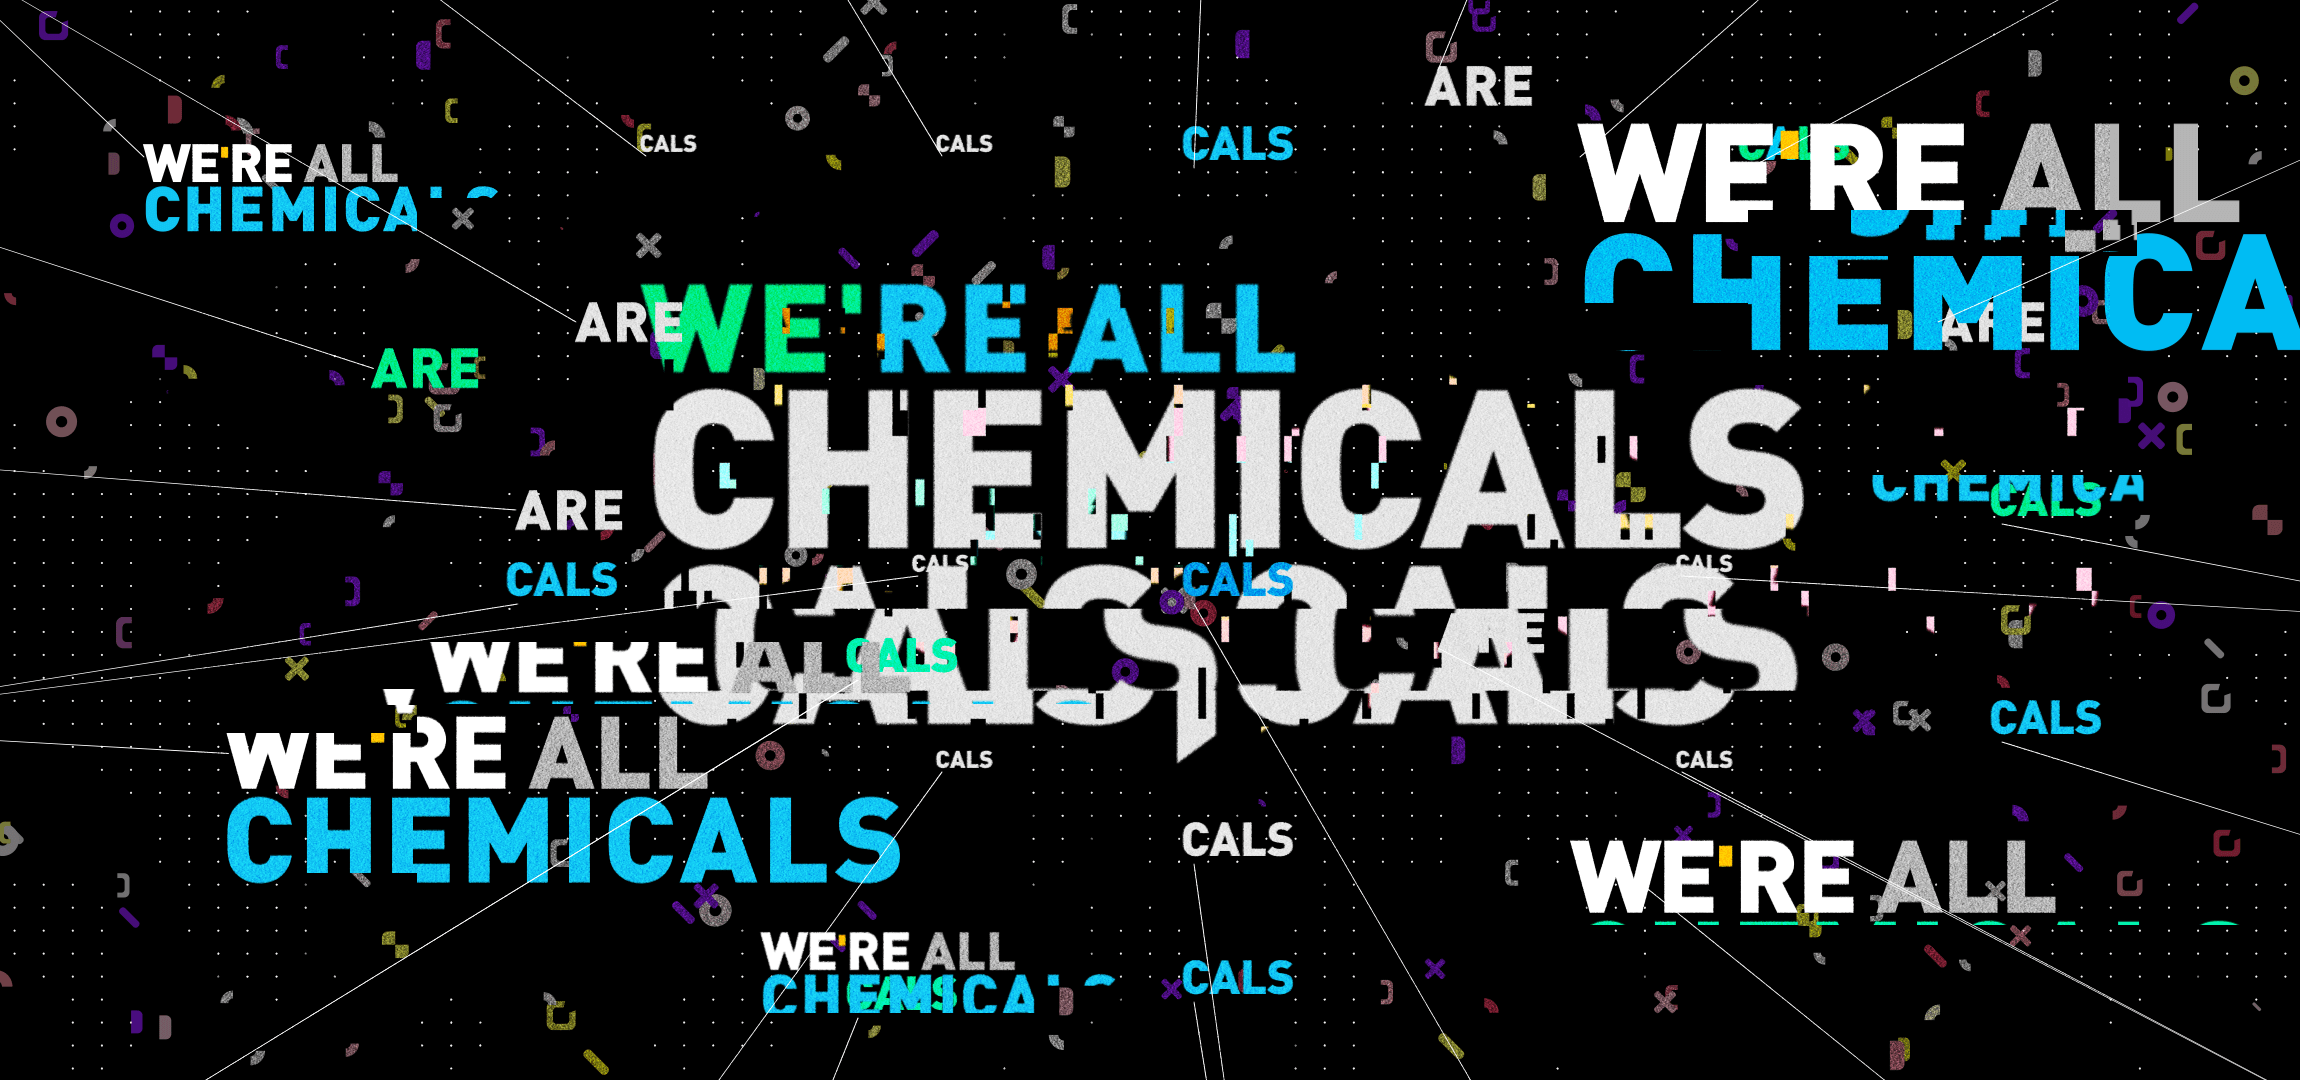 Were_all_Chemicals.png